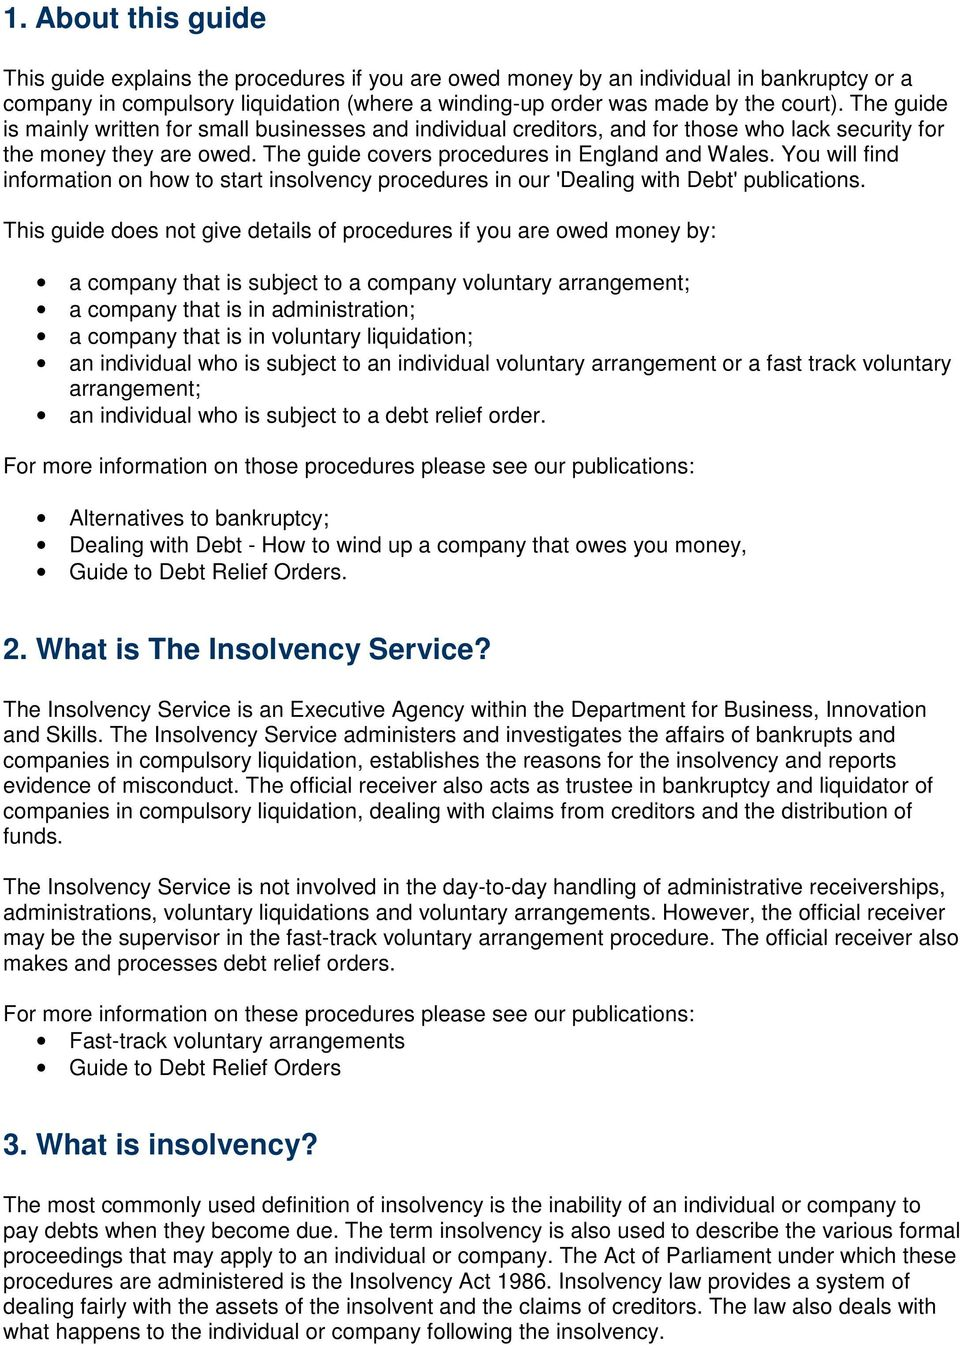 You will find information on how to start insolvency procedures in our 'Dealing with Debt' publications.